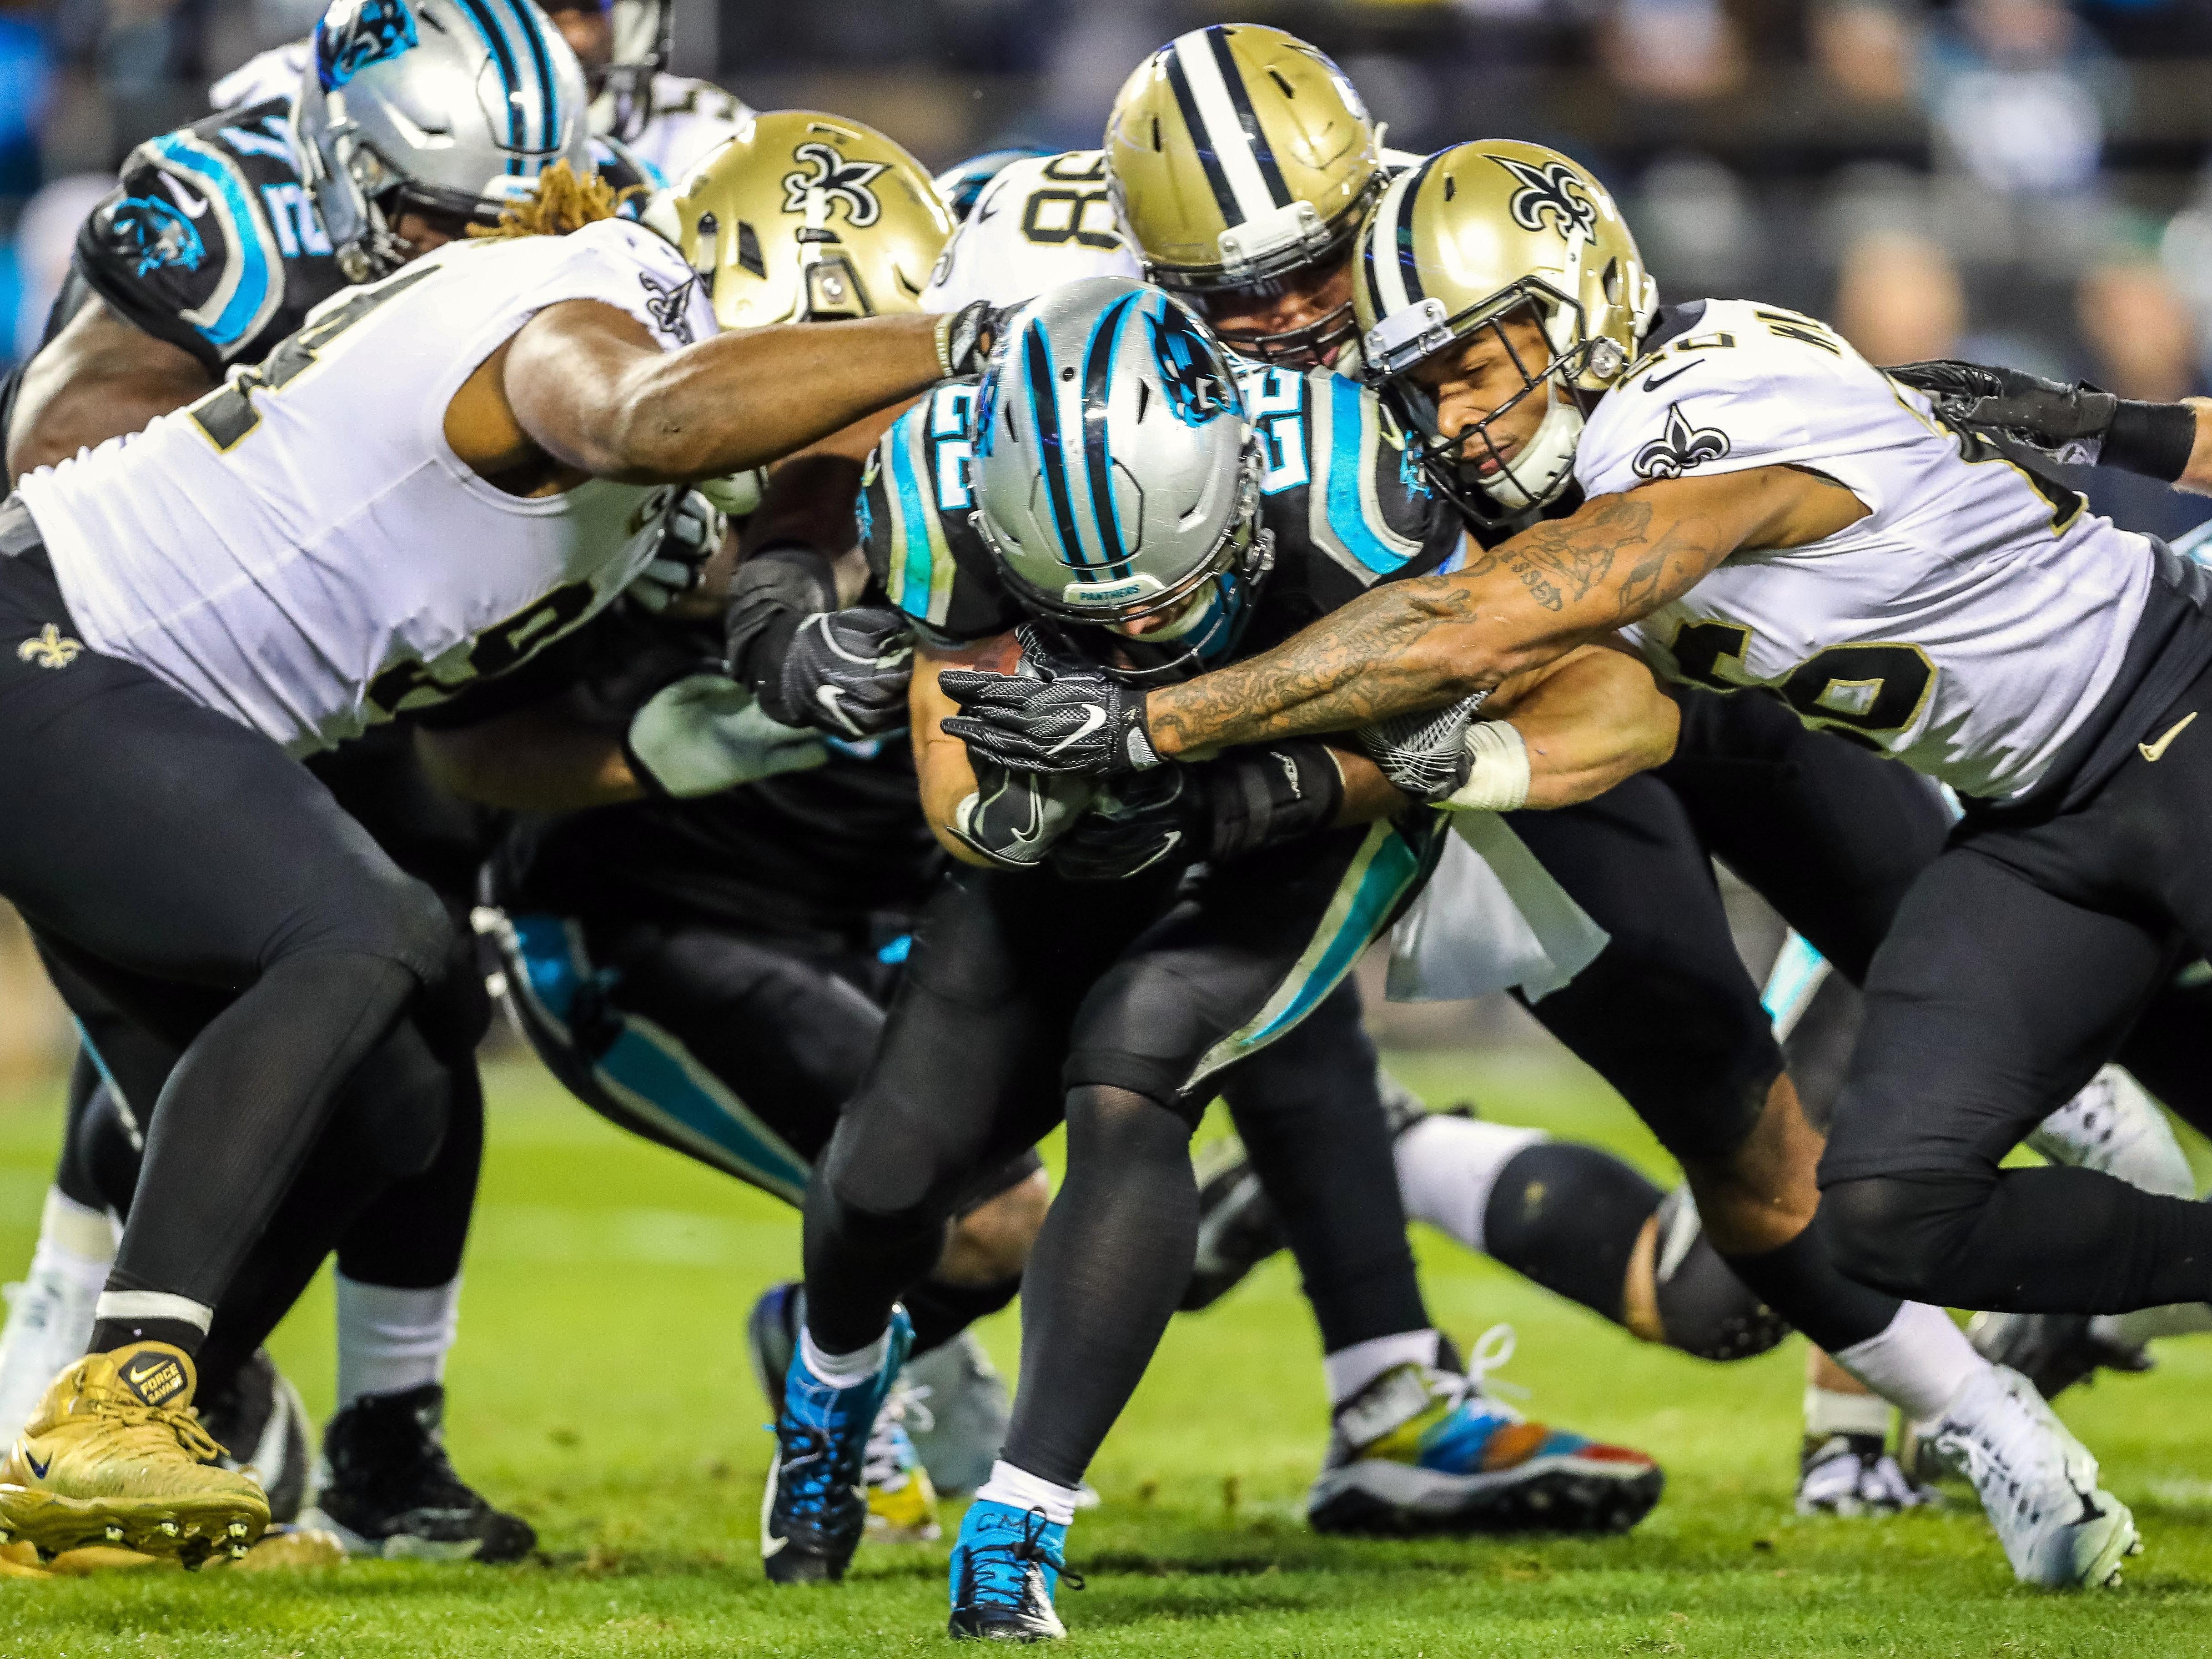 Carolina Panthers running back Christian McCaffrey is wrapped up by the New Orleans Saints defense during the second quarter at Bank of America Stadium.